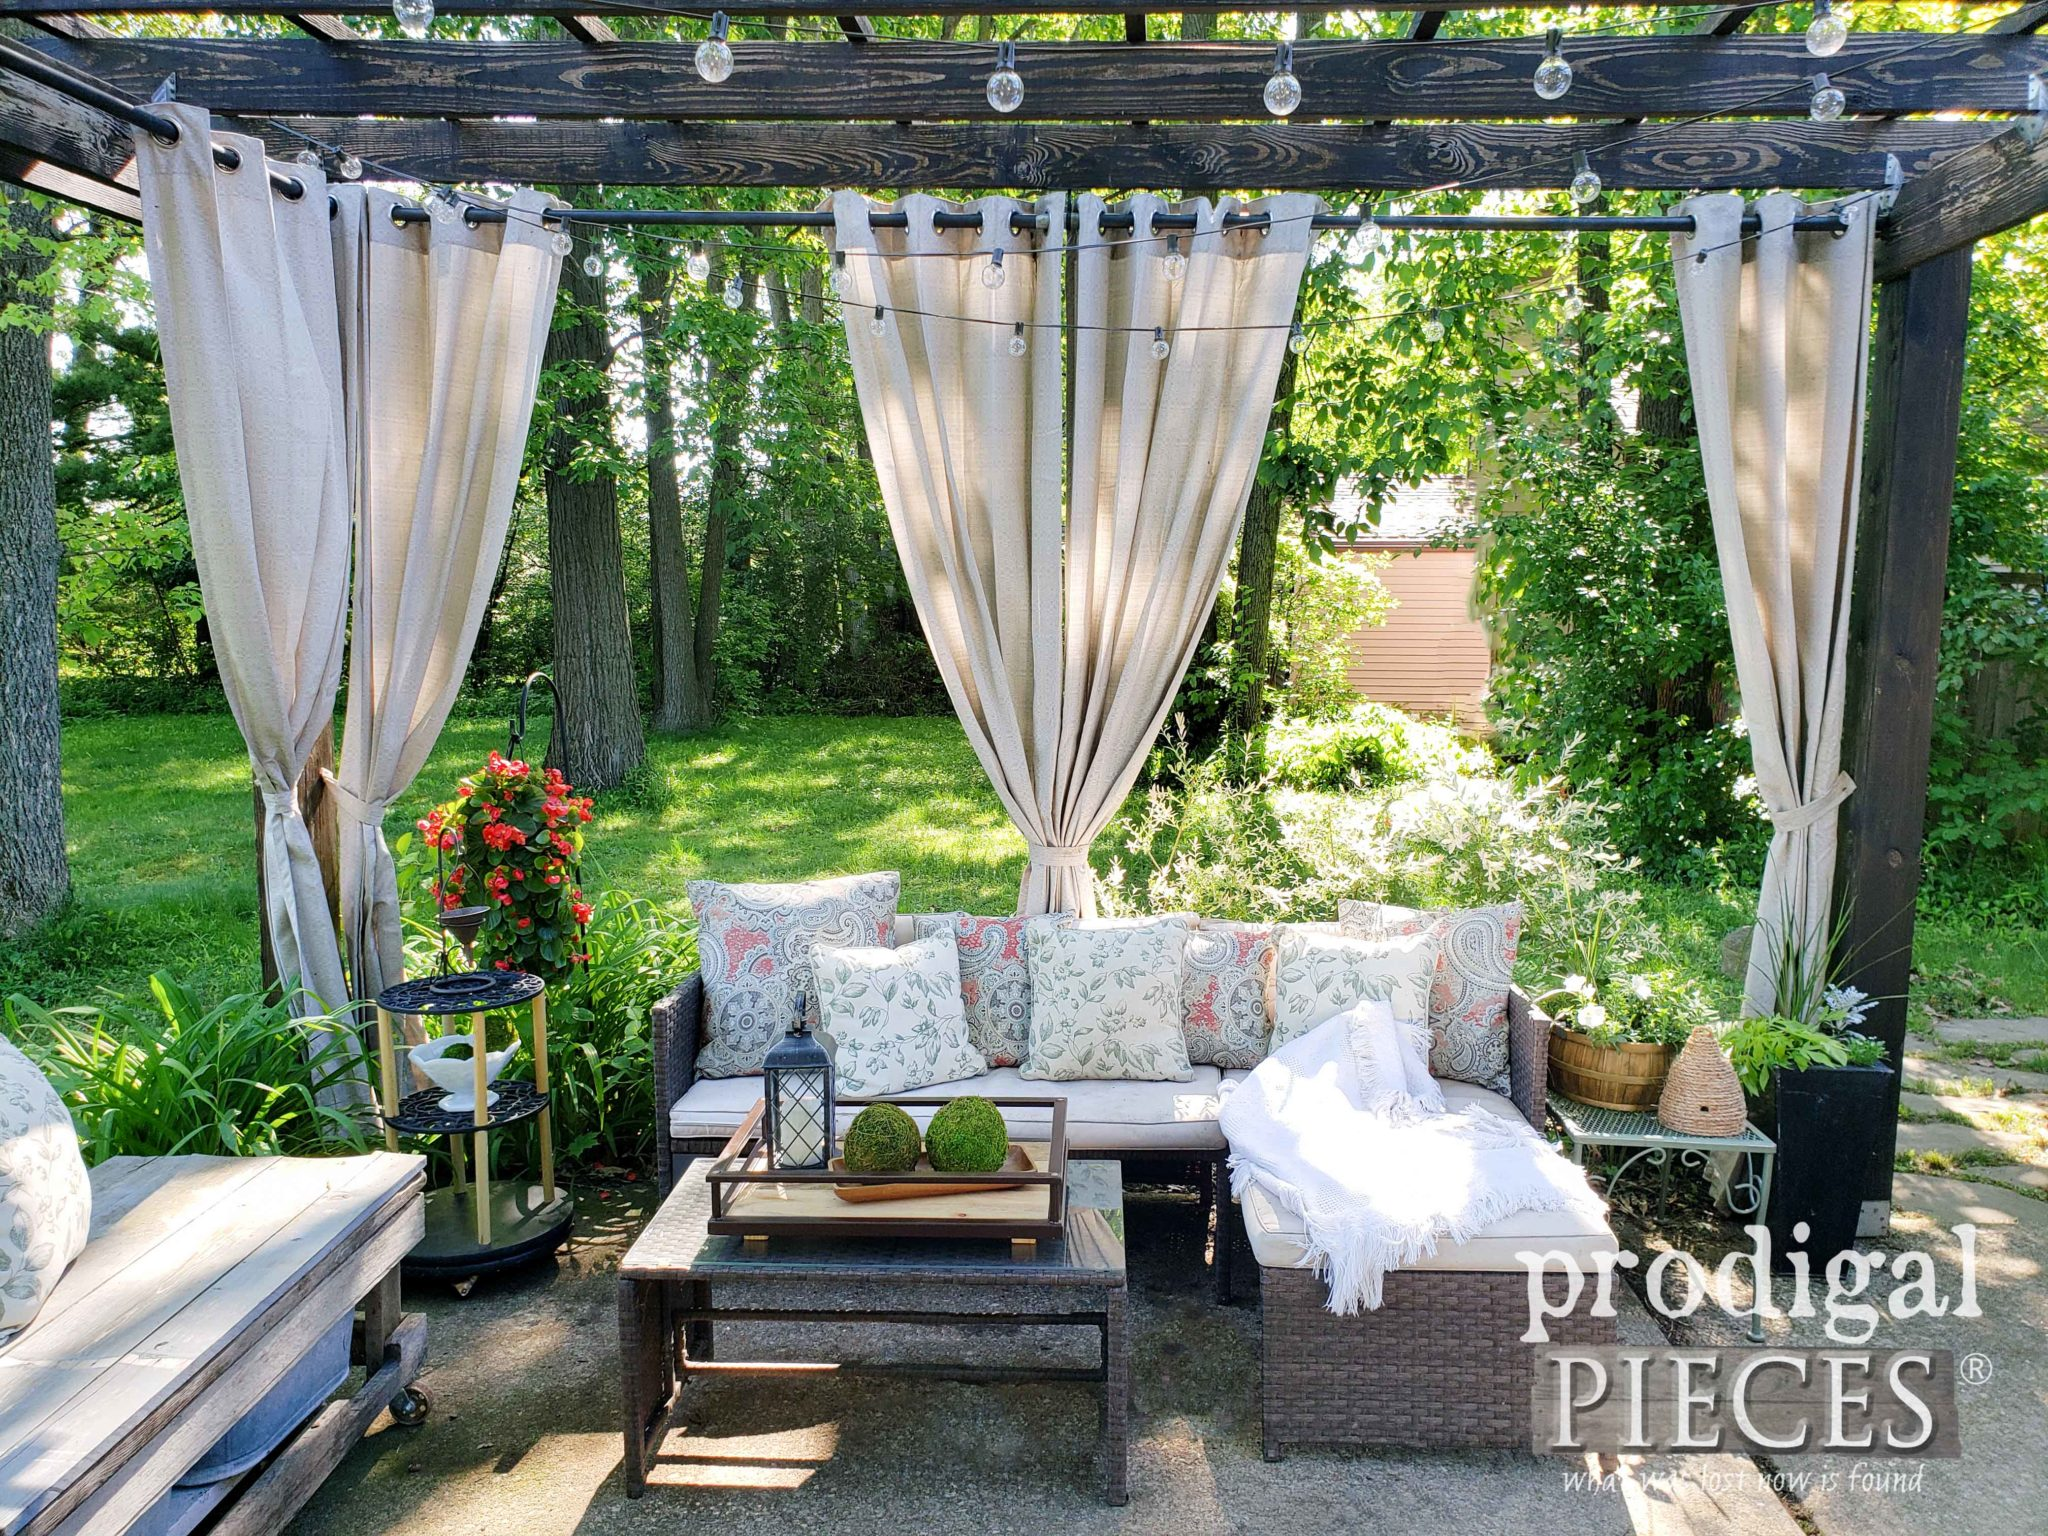 Farmhouse Style Patio Decor created by Larissa of Prodigal Pieces | prodigalpieces.com #prodigalpieces #home #farmhouse #diy #outdoor #patio